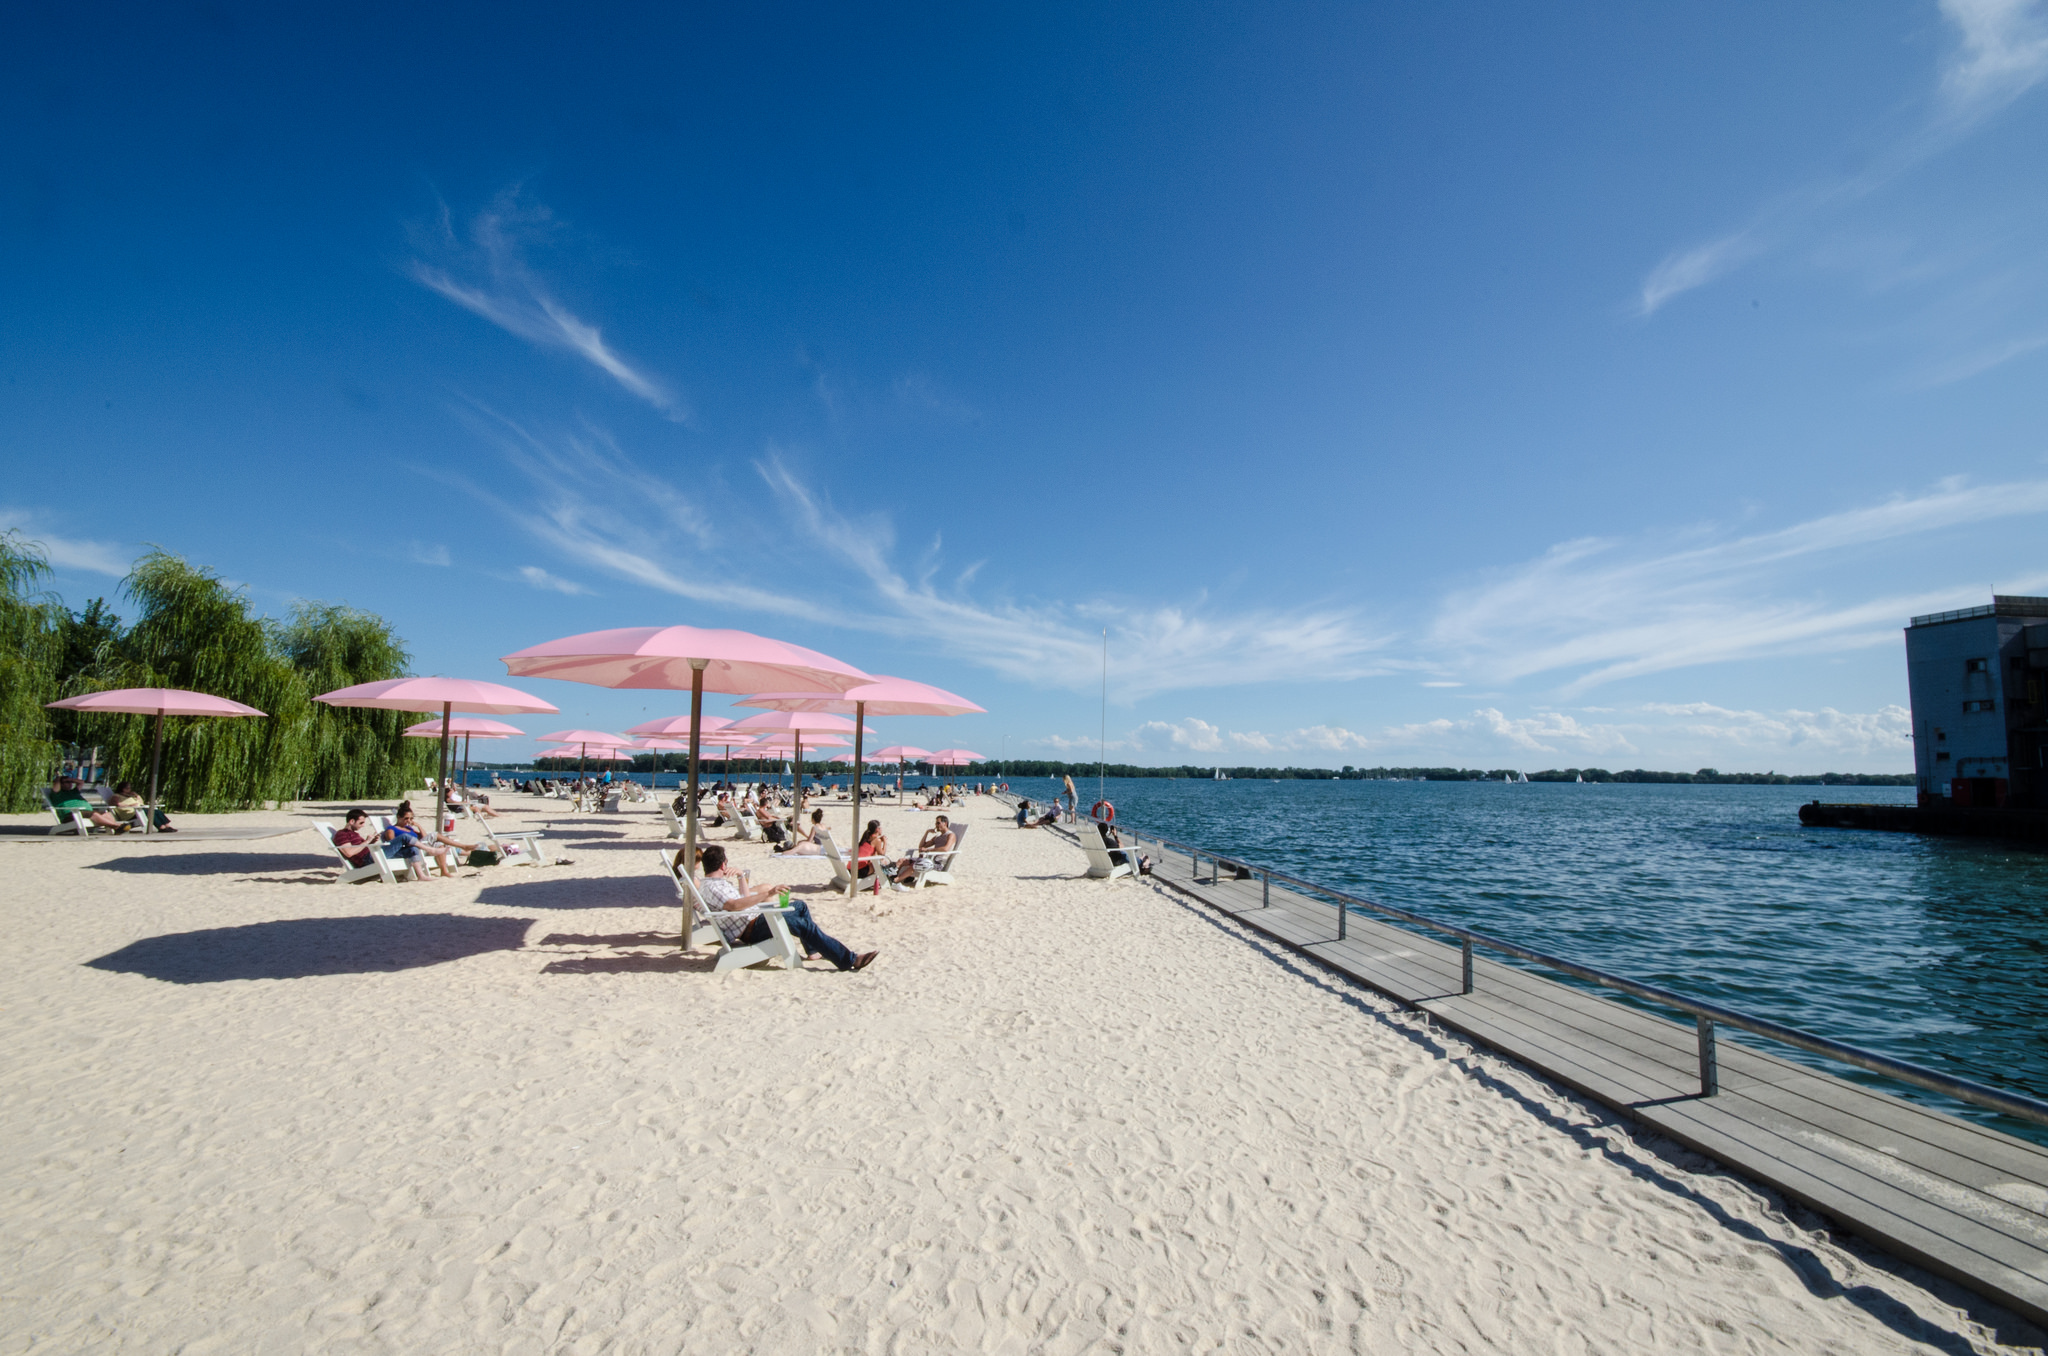 Photo of Sugar Beach in Toronto and Lakeshore. It's so bright and sunny and the water is a deep blue while the sky is a light blue.